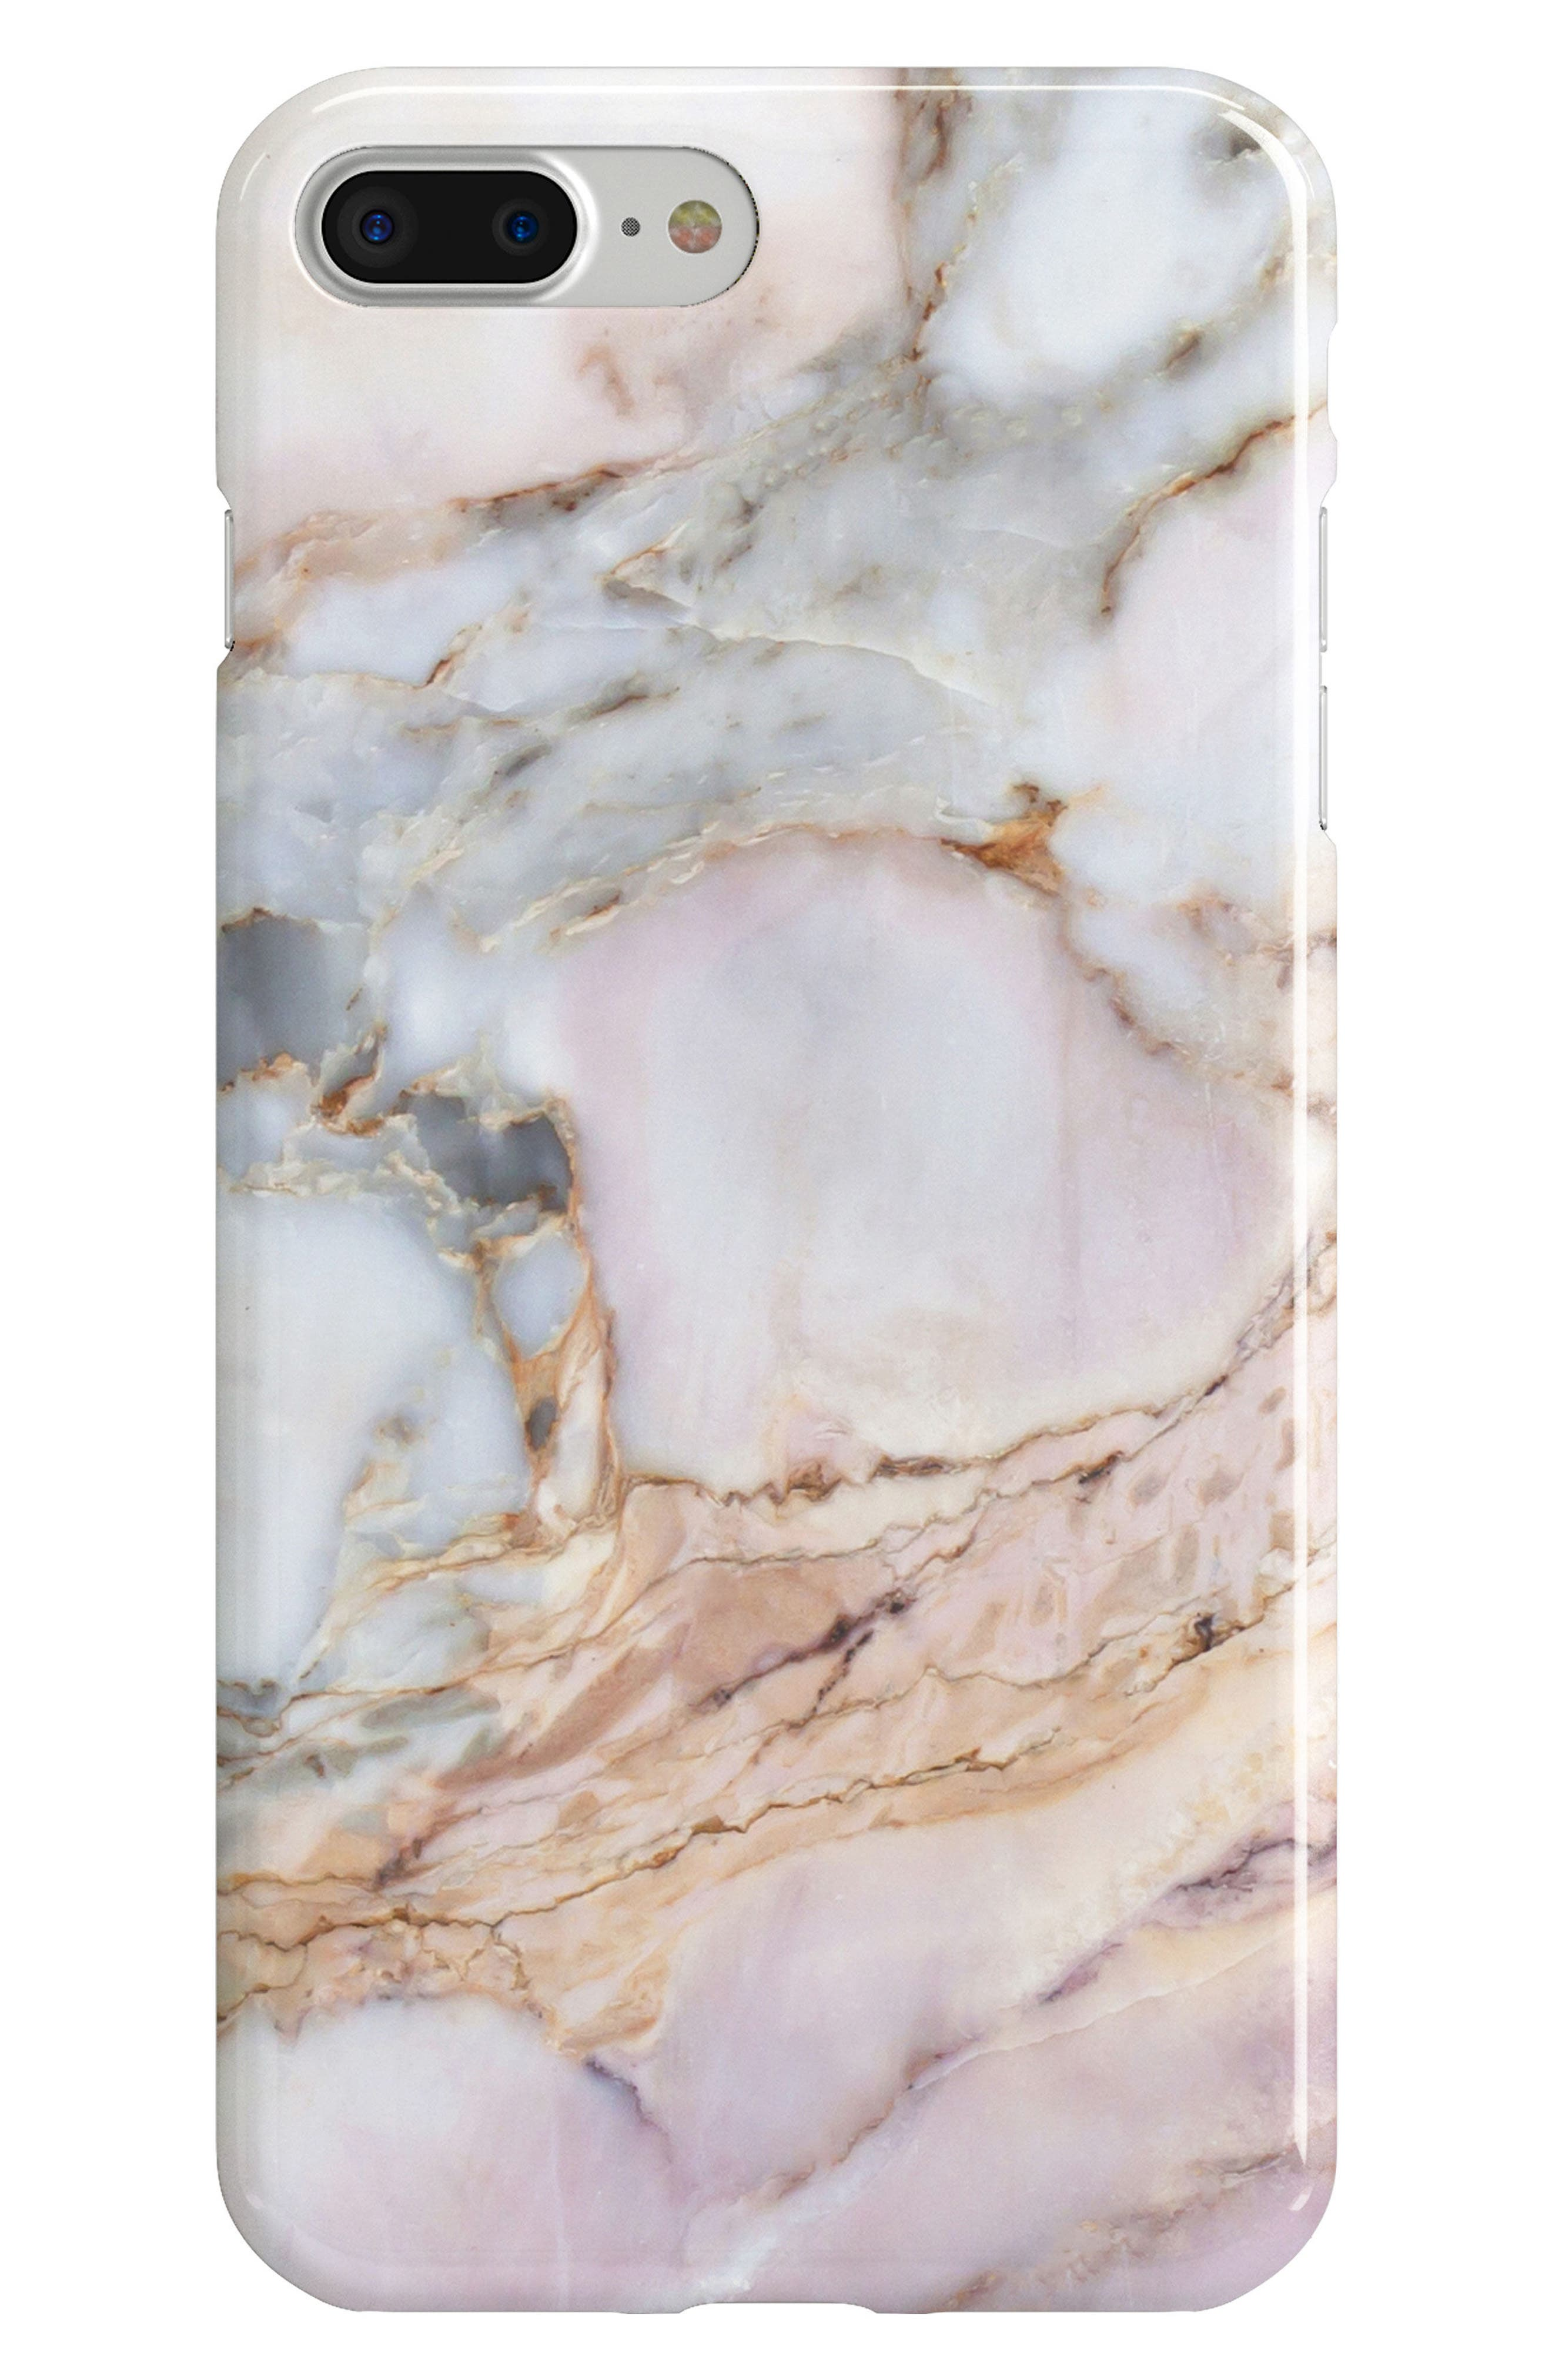 iphone 7 plus cell phone casesIphone 7 Cases And Accessories Custom Made Iphone 7 Cases Phone Case Accessories Top Iphone 7 Cases Fashion #20